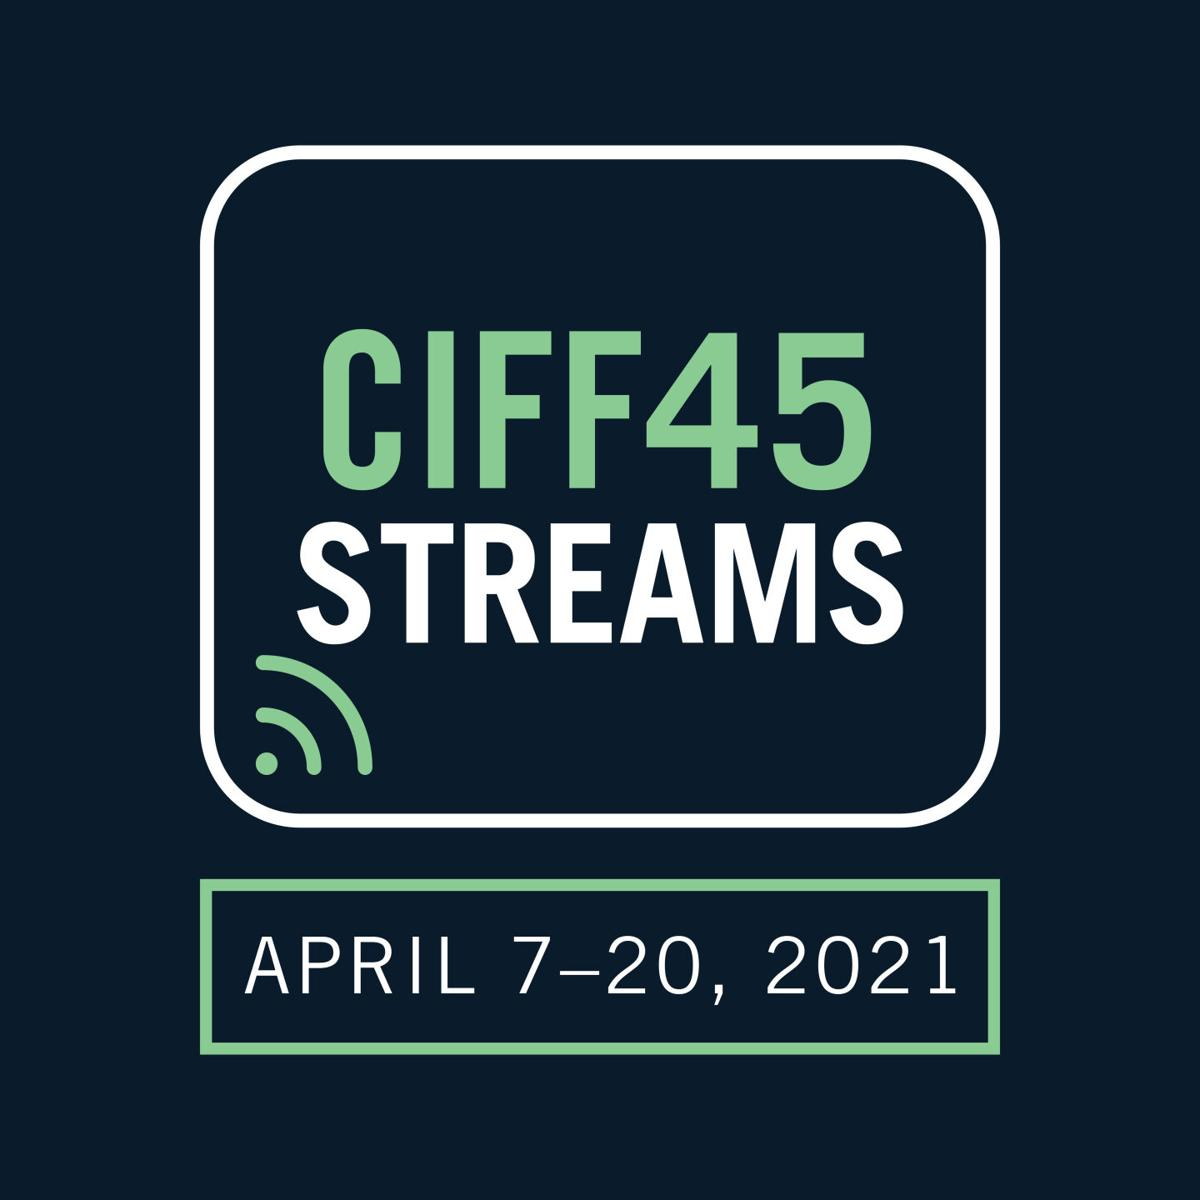 CIFF45_CIFFStreams_Social.jpg